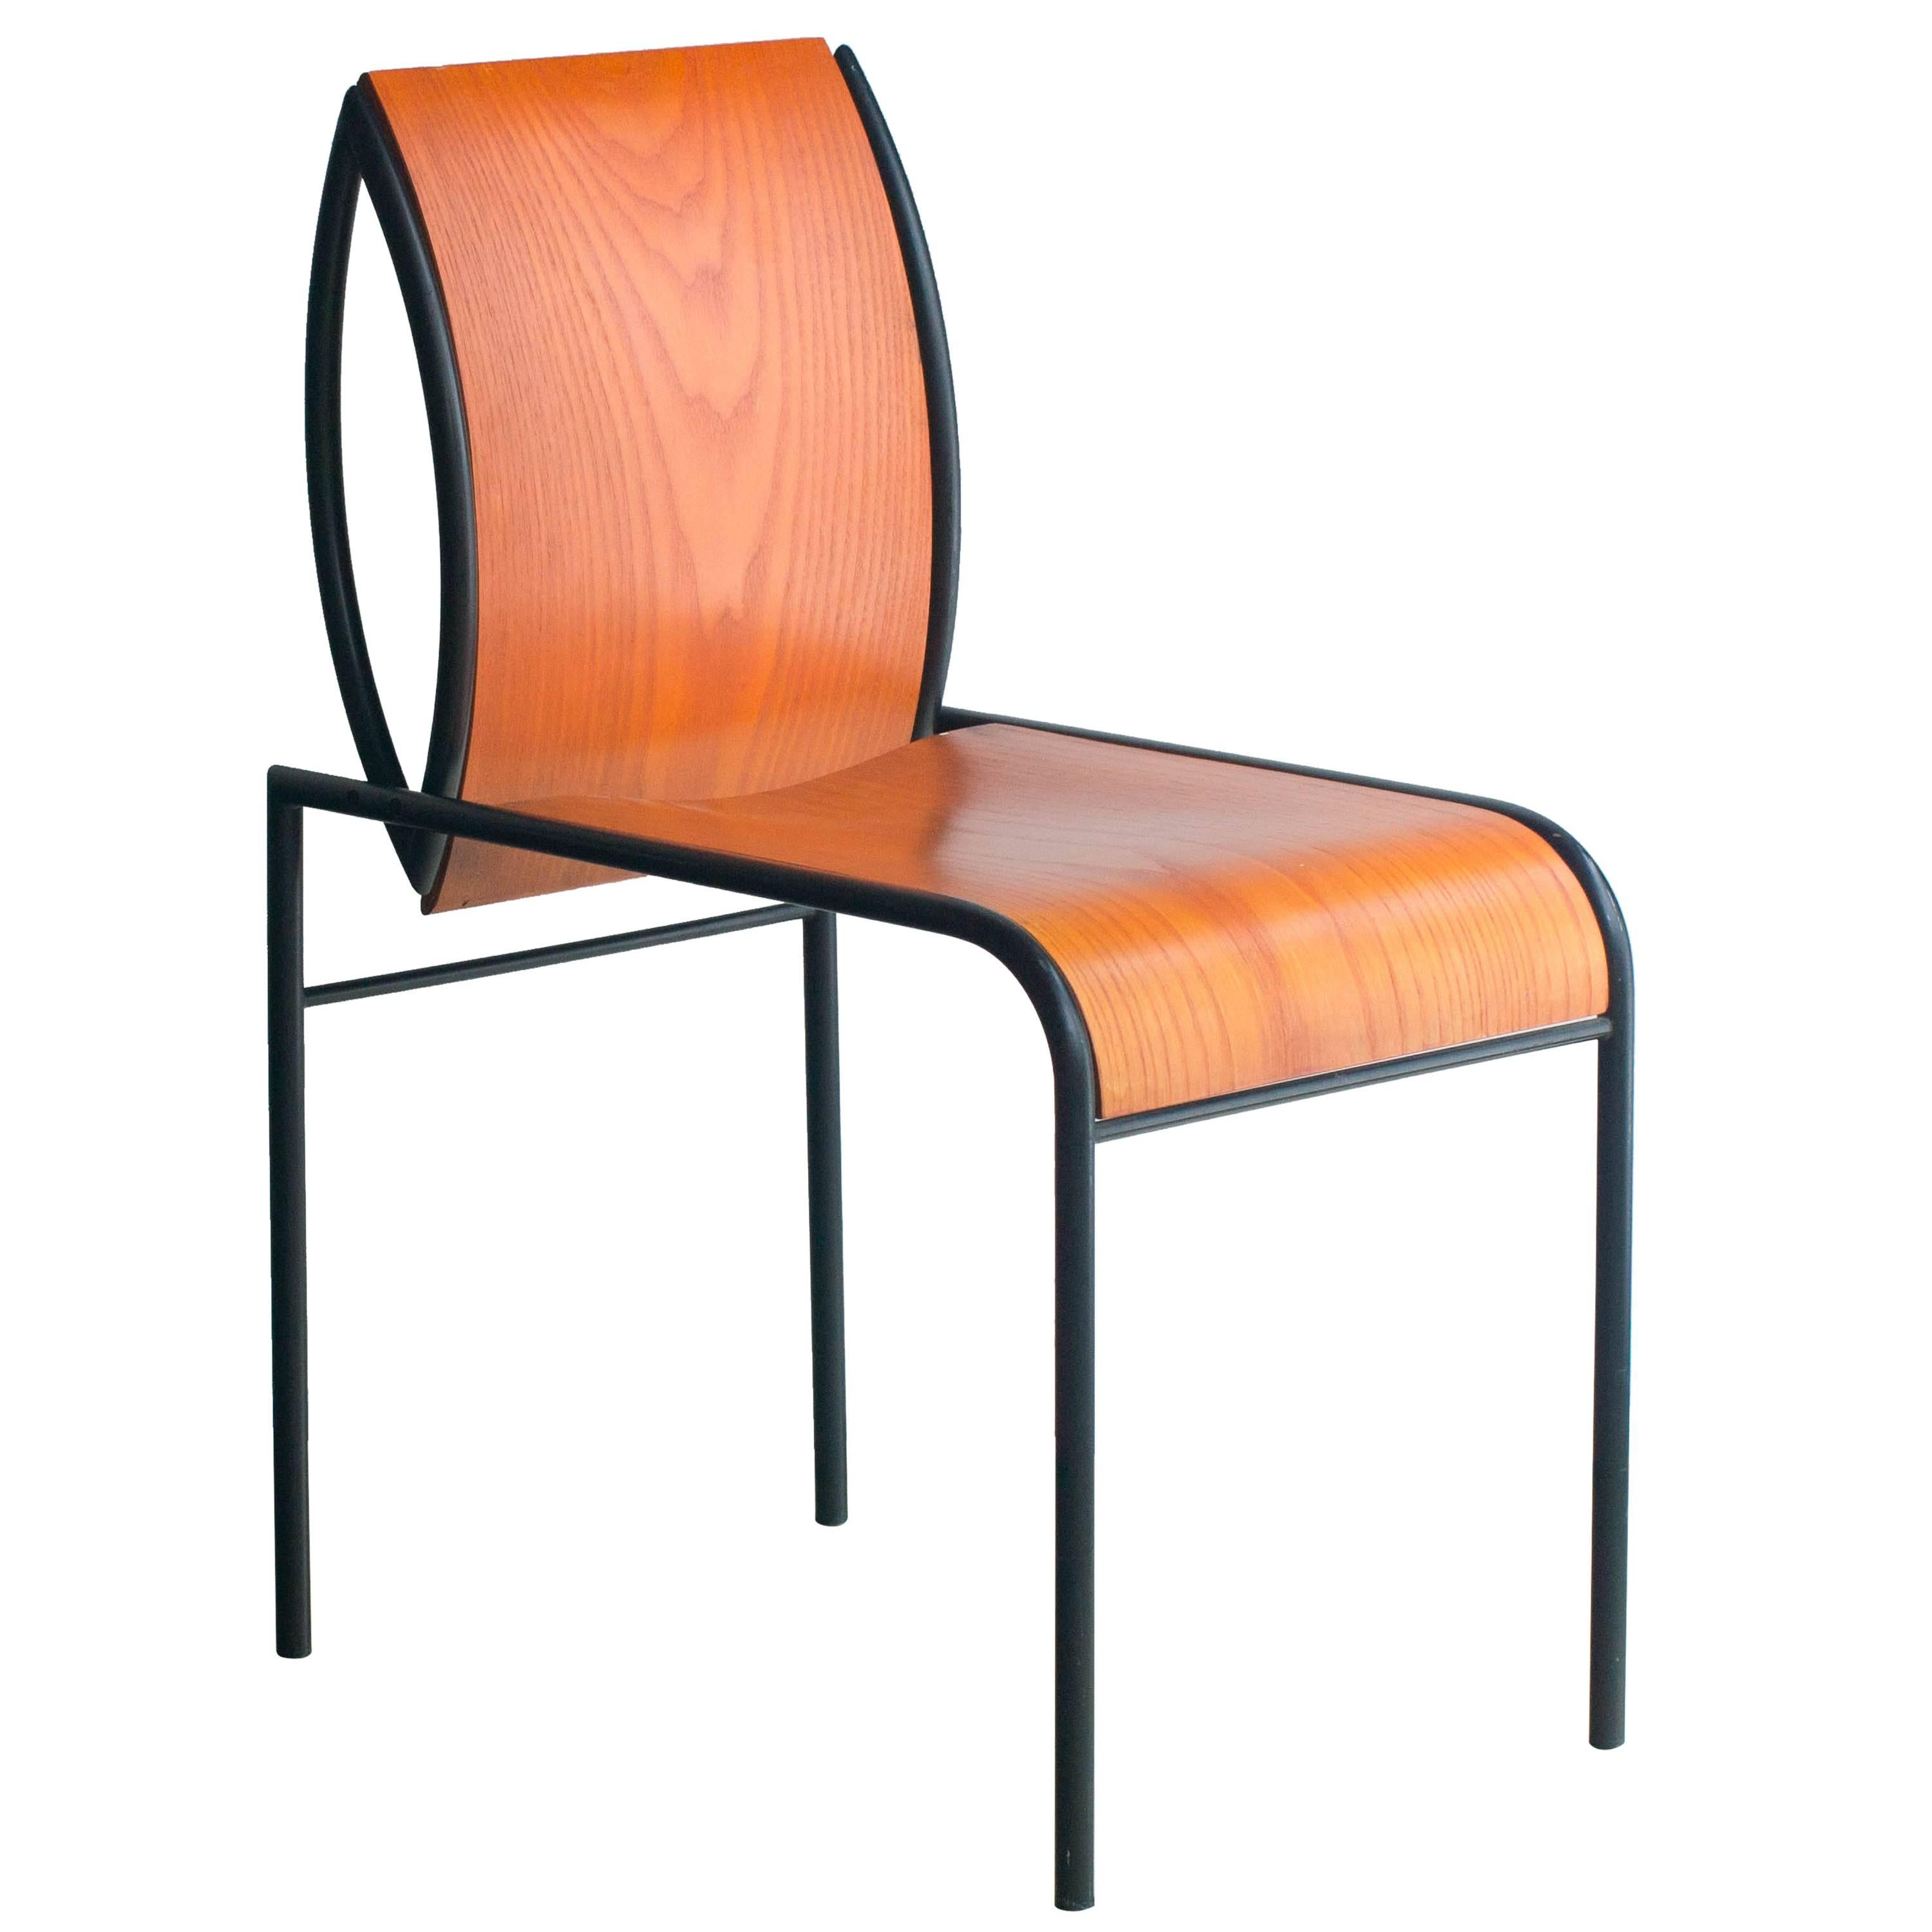 Kim Steel and Plywood Chair Michele De Lucchi for Memphis Original 1980s